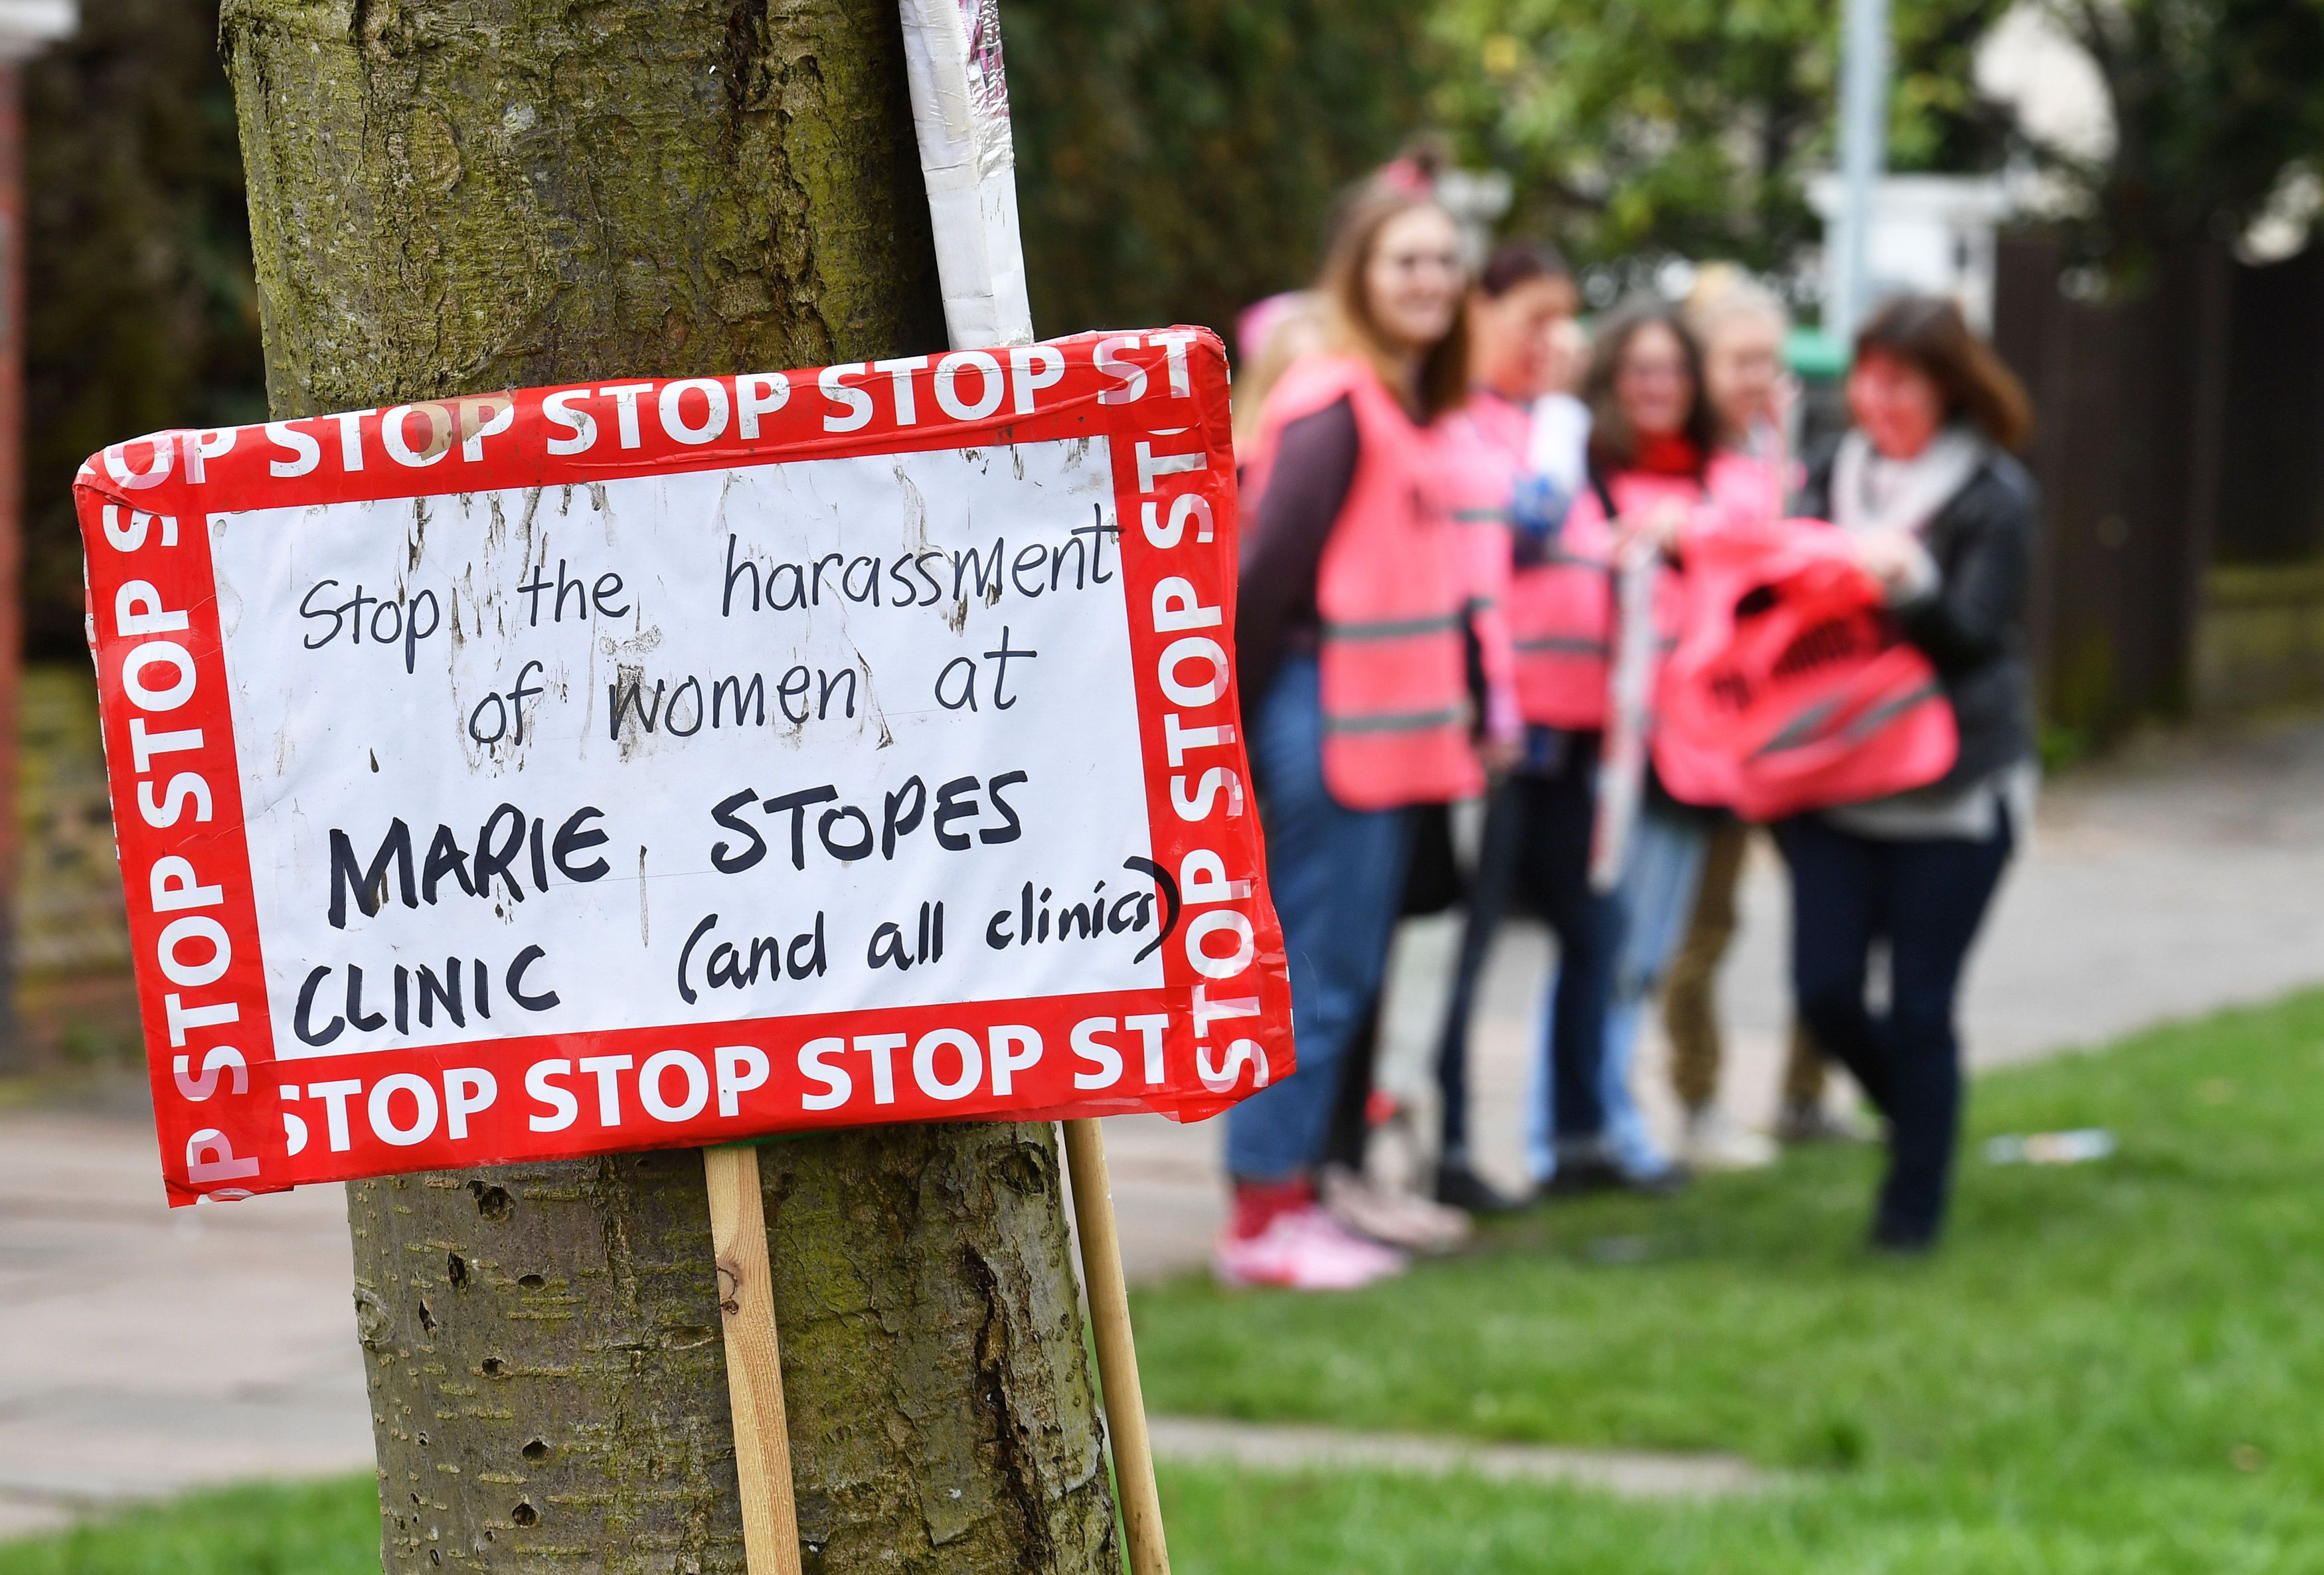 Campaigners hopeful as anti-abortion protests banned outside Marie Stopes clinic